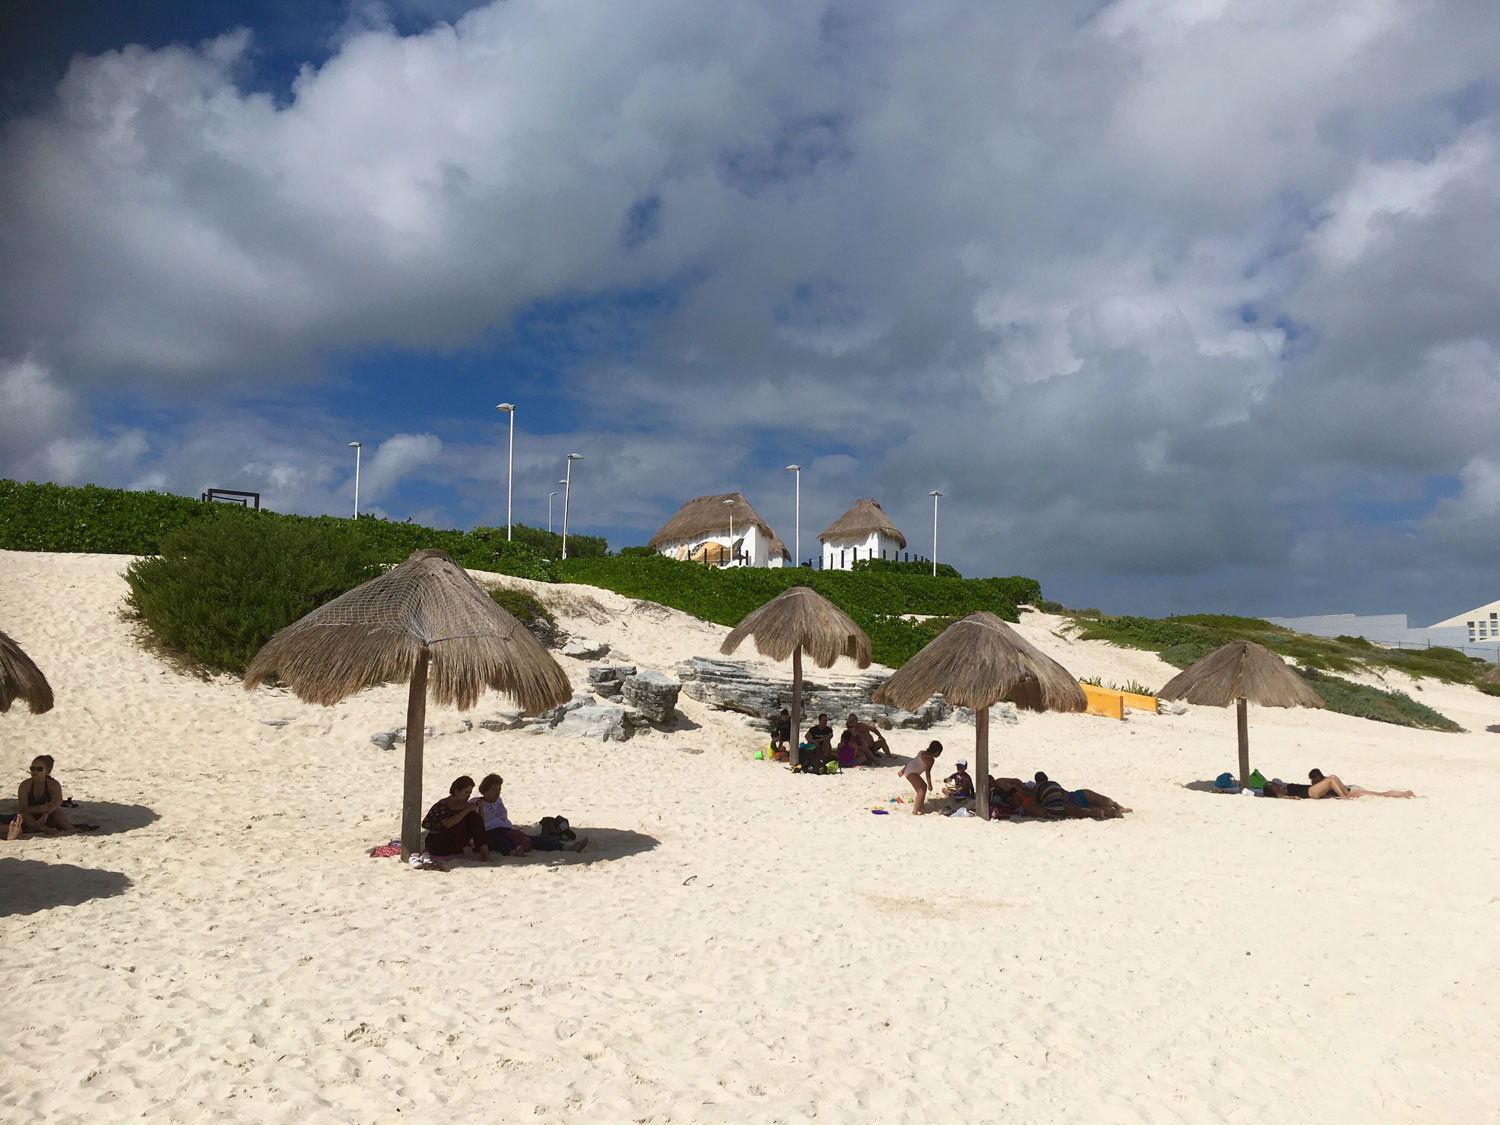 The palapas (made from palm leaves) on the beach are free.